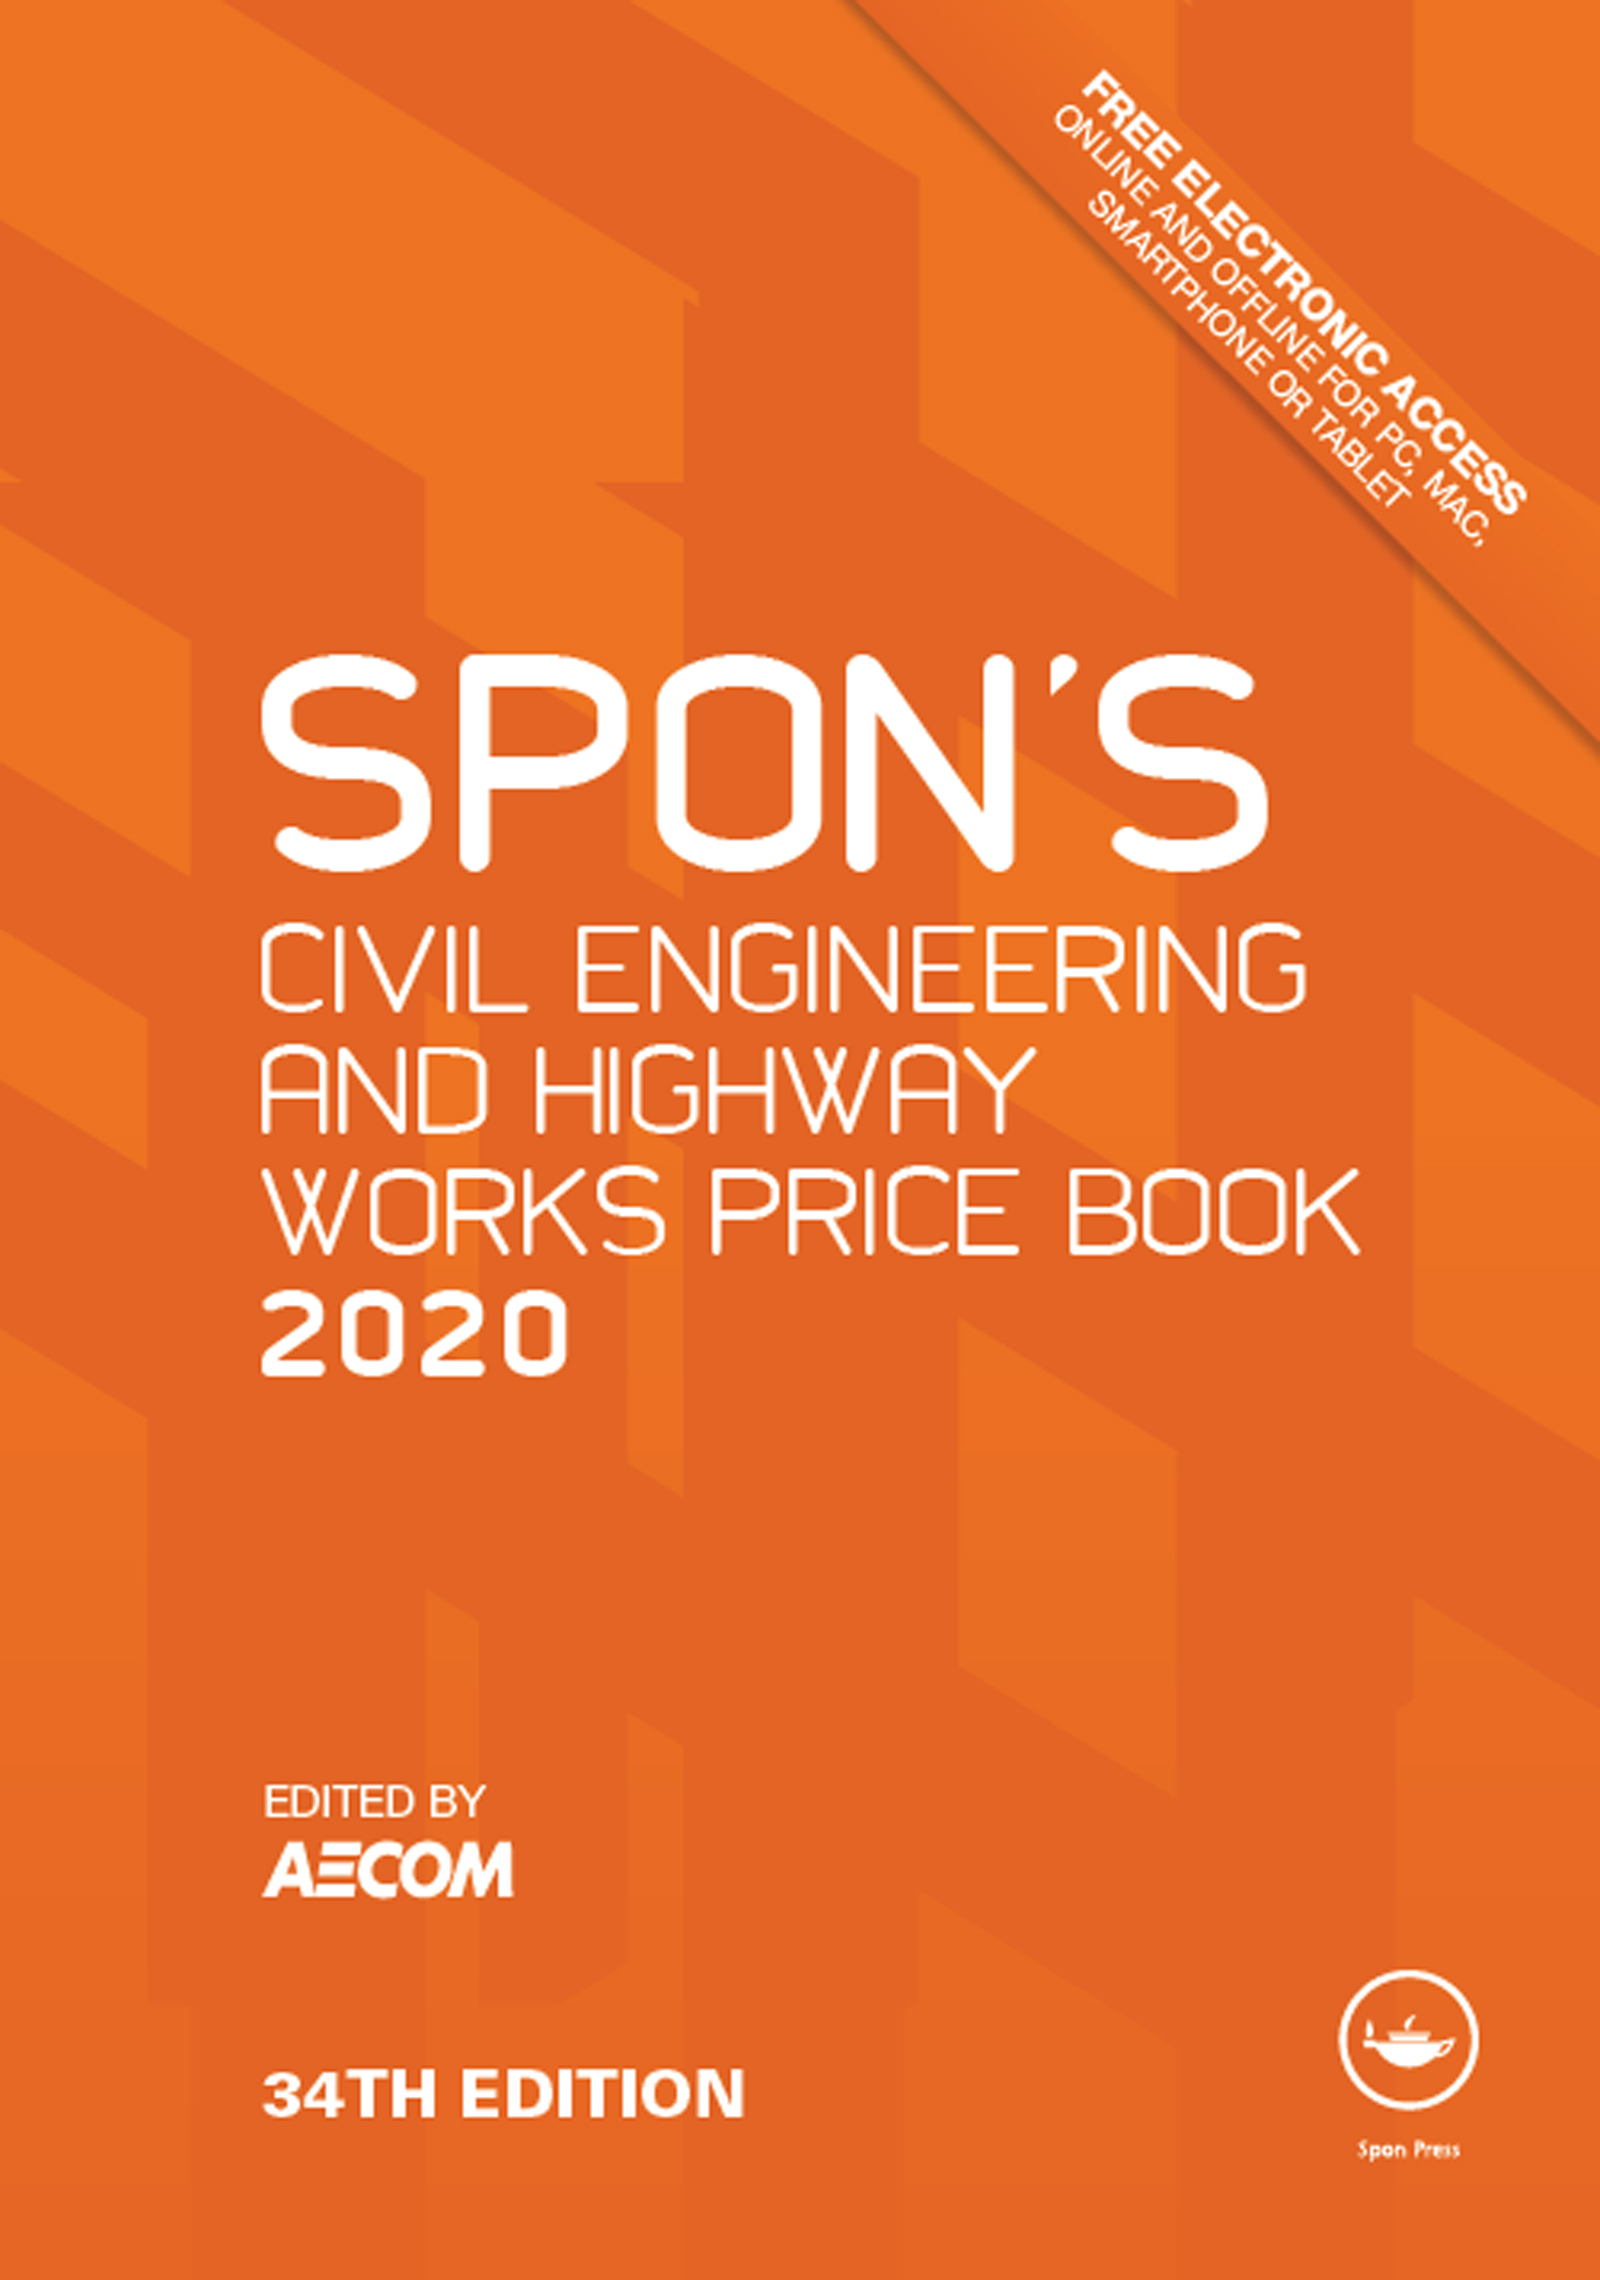 Spon's Civil Engineering and Highway Works Price Book 2020 book cover